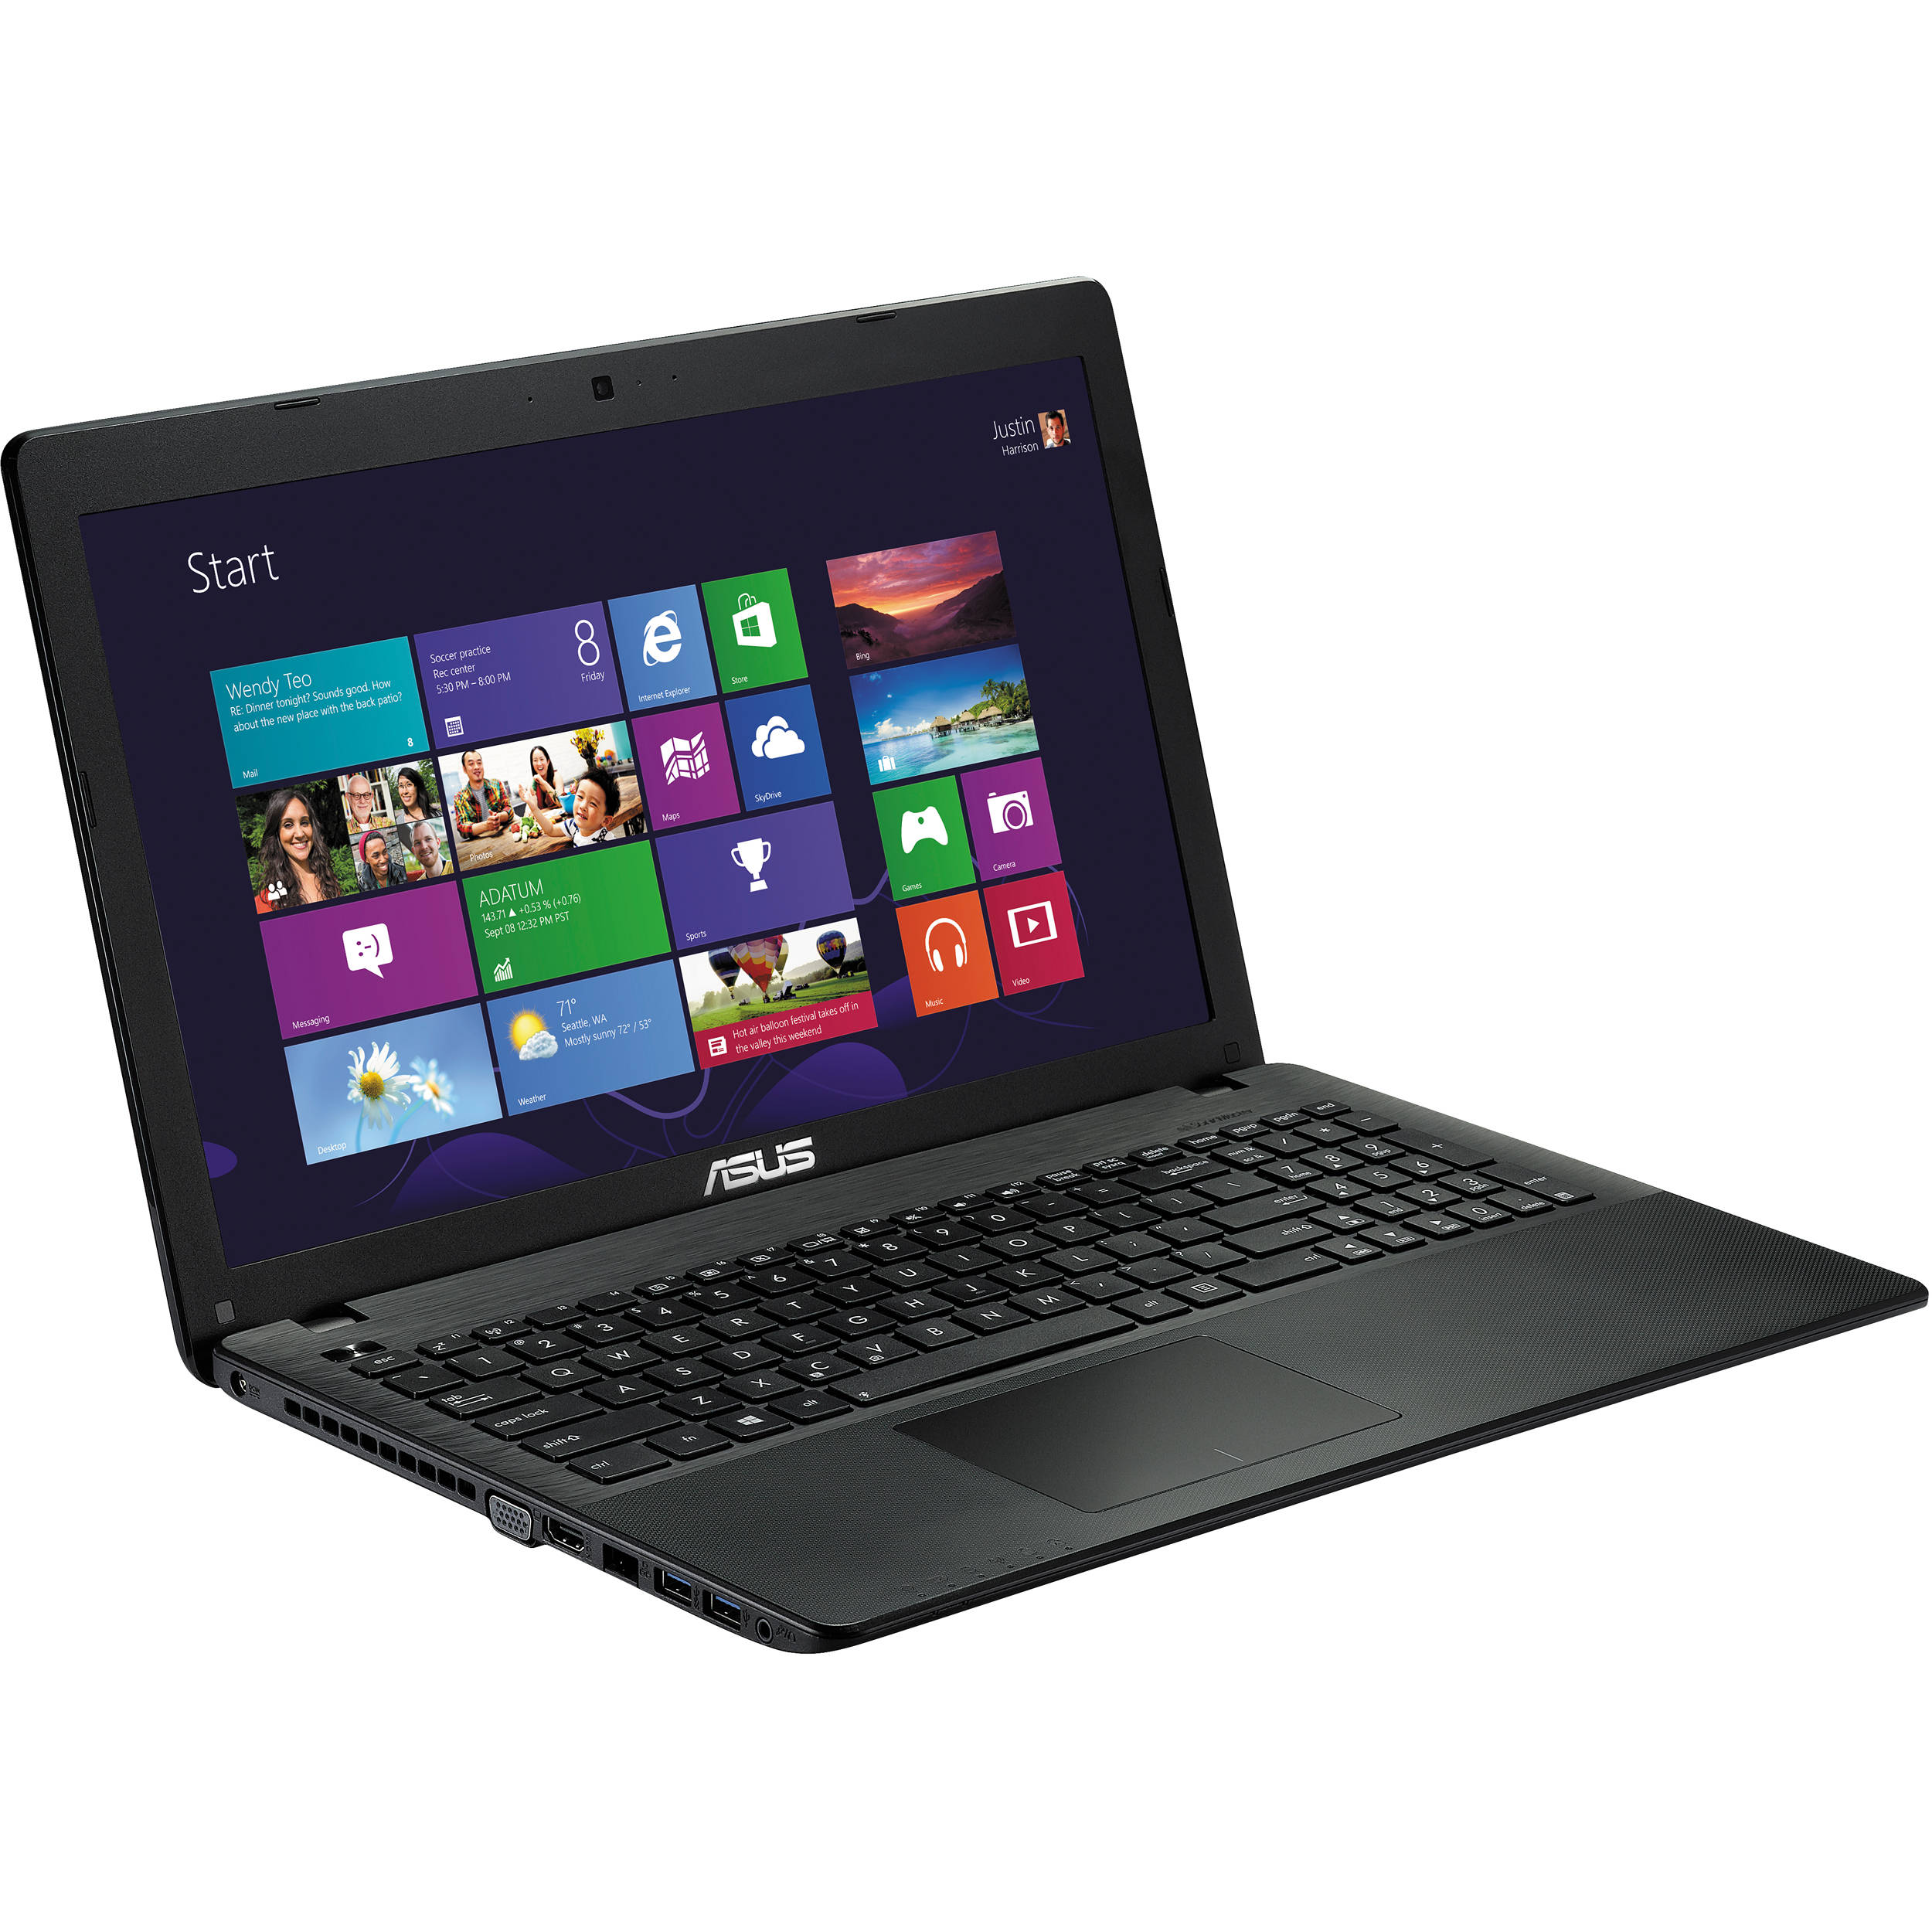 ASUS X552EA WIRELESS RADIO CONTROL DRIVERS FOR MAC DOWNLOAD